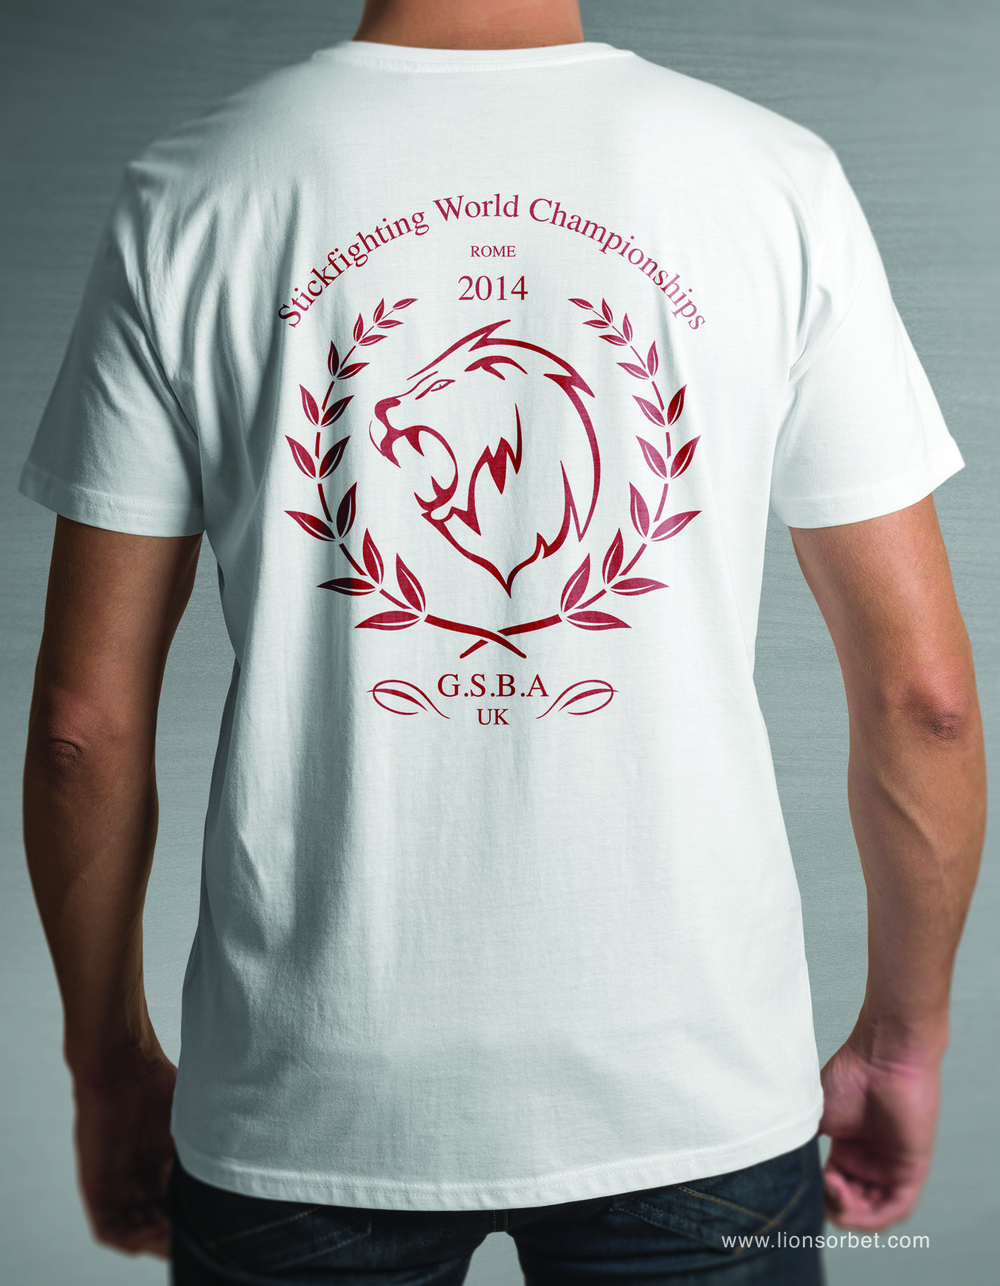 Squad Tee Design for the GSBA World Championships held in Rome 2014